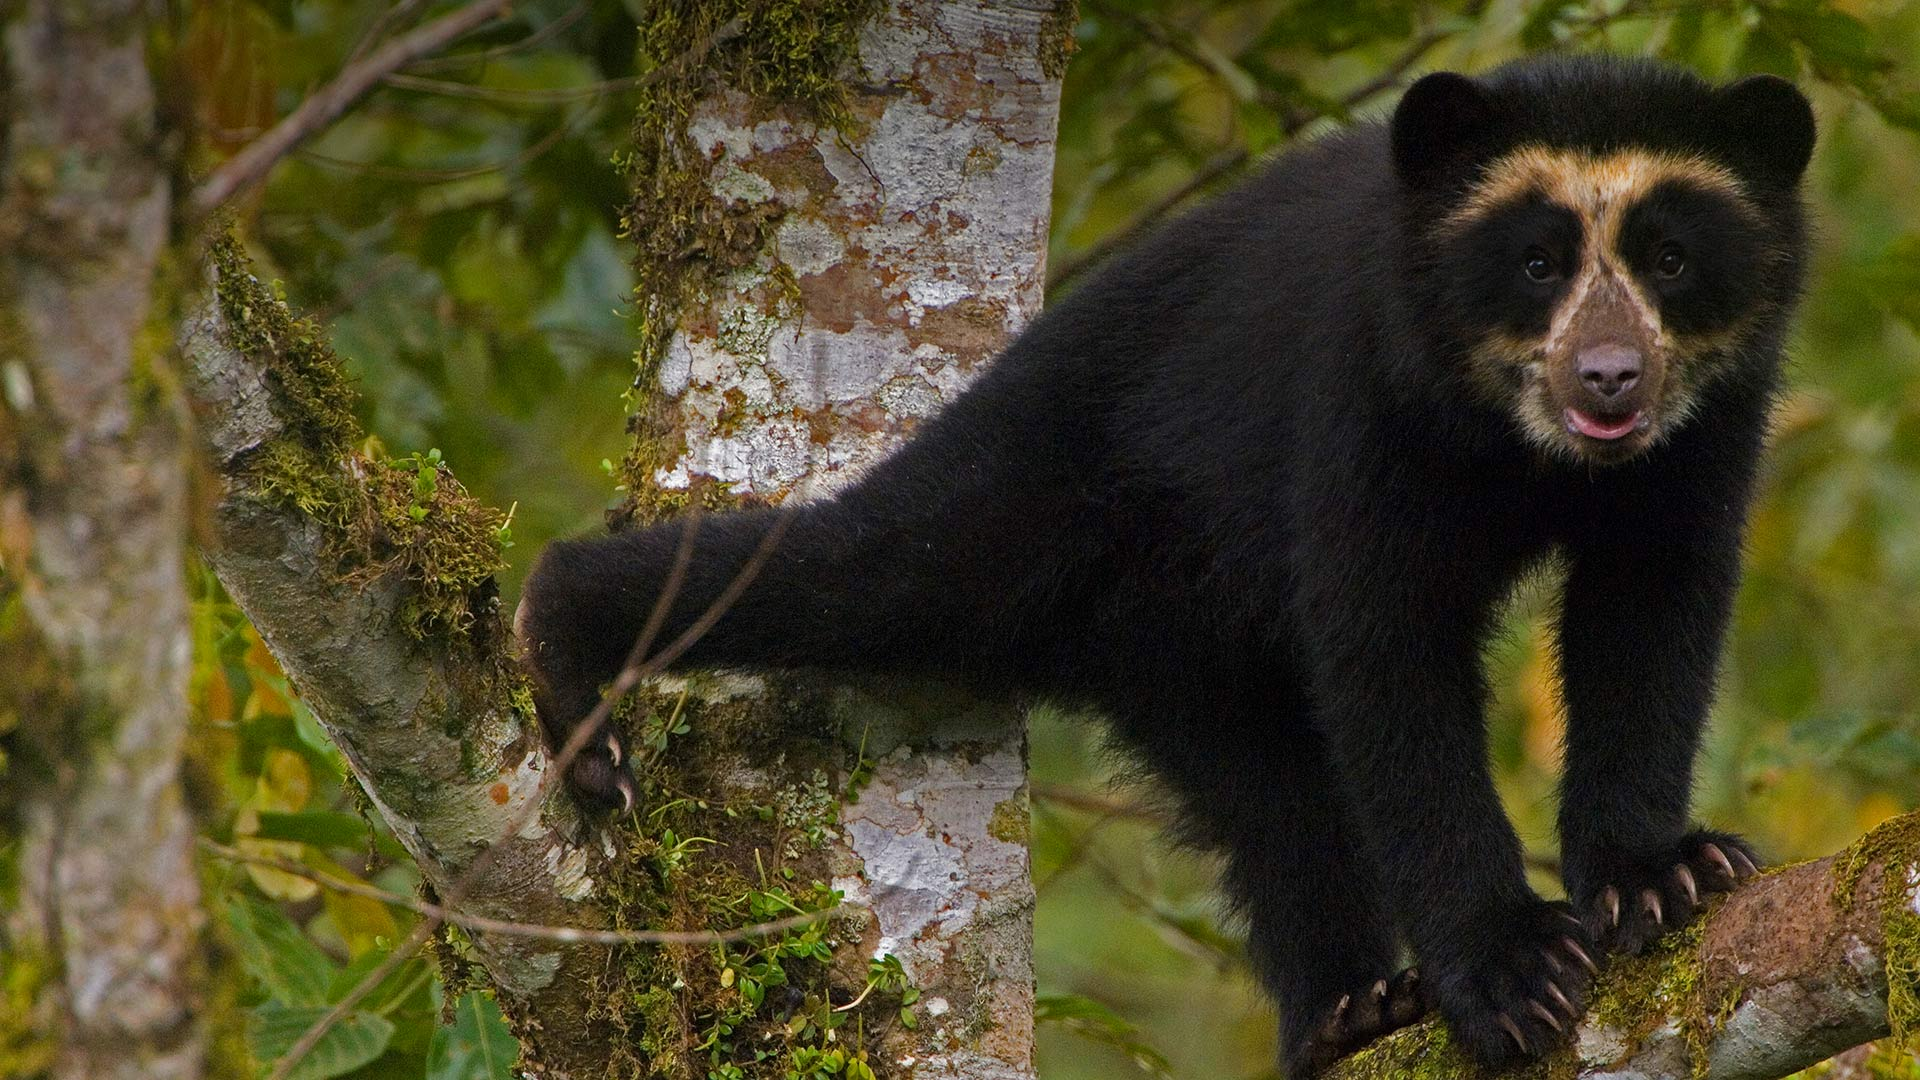 A spectacled bear cub in Maquipucuna Cloud Forest Reserve, Ecuador (© Pete Oxford/Minden Pictures)